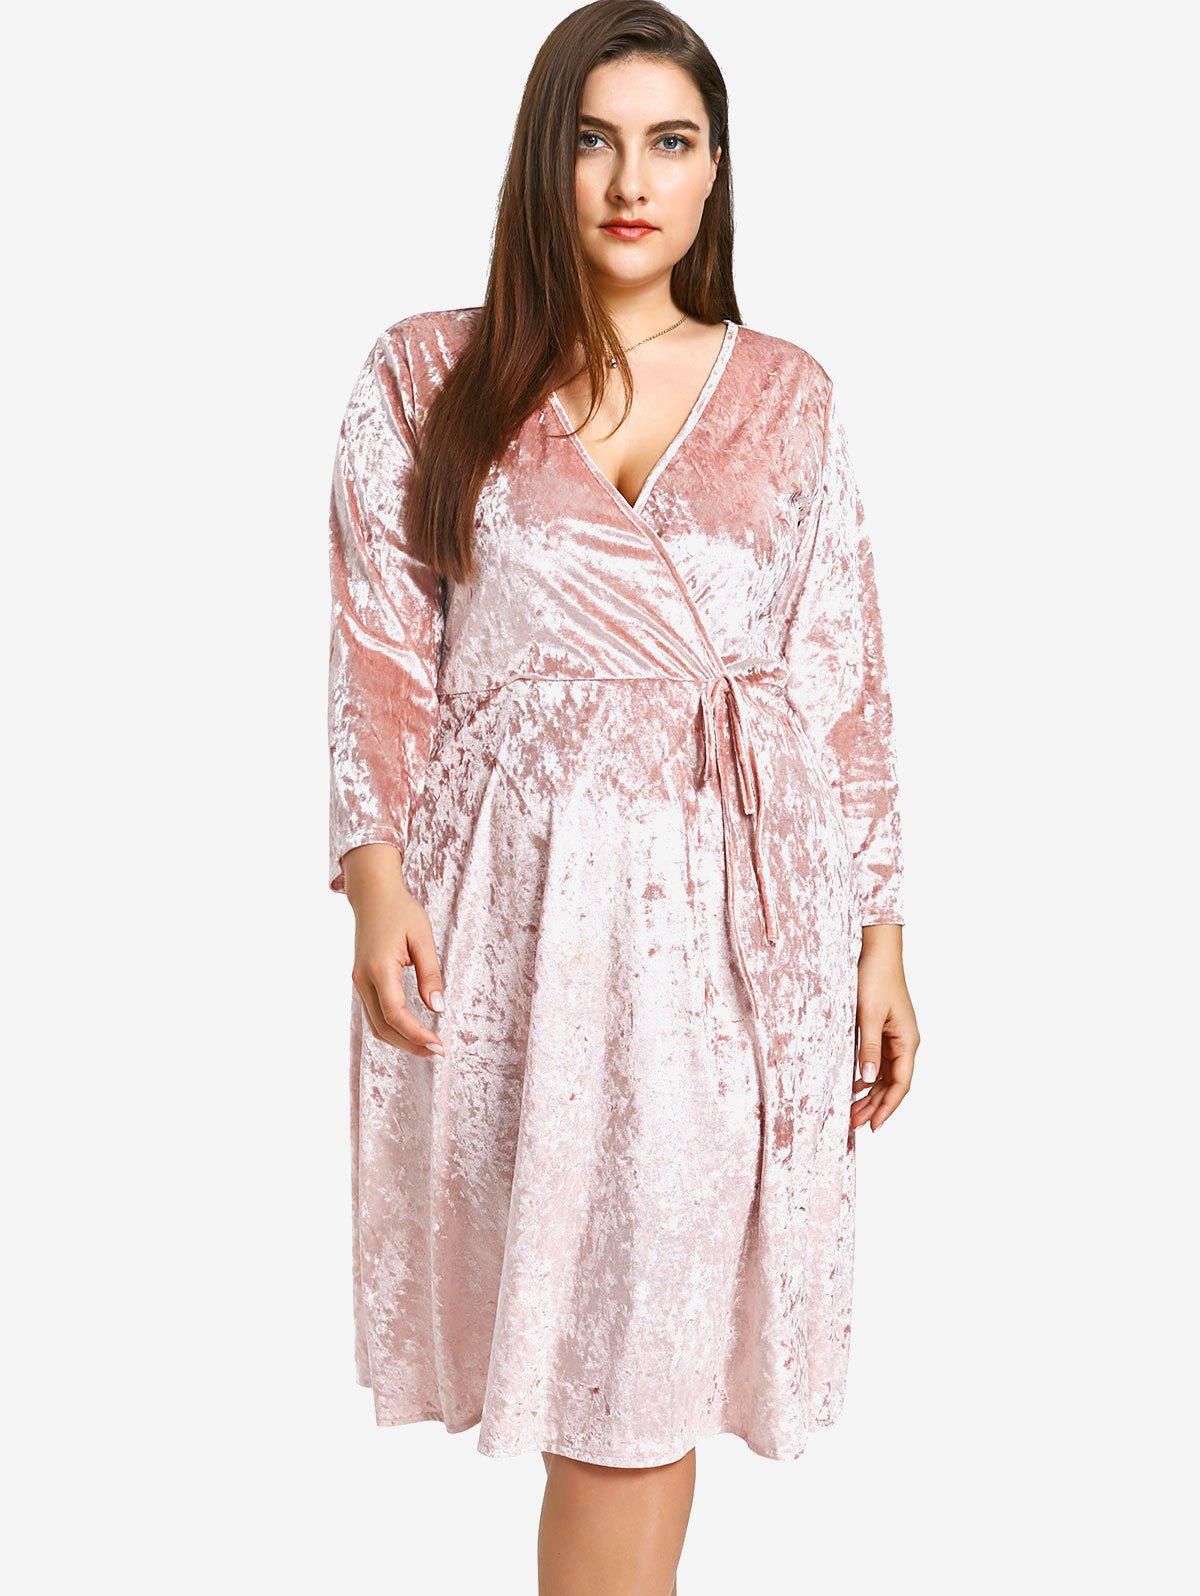 Crushed Velvet Plus Size Dress - PINK 2XL